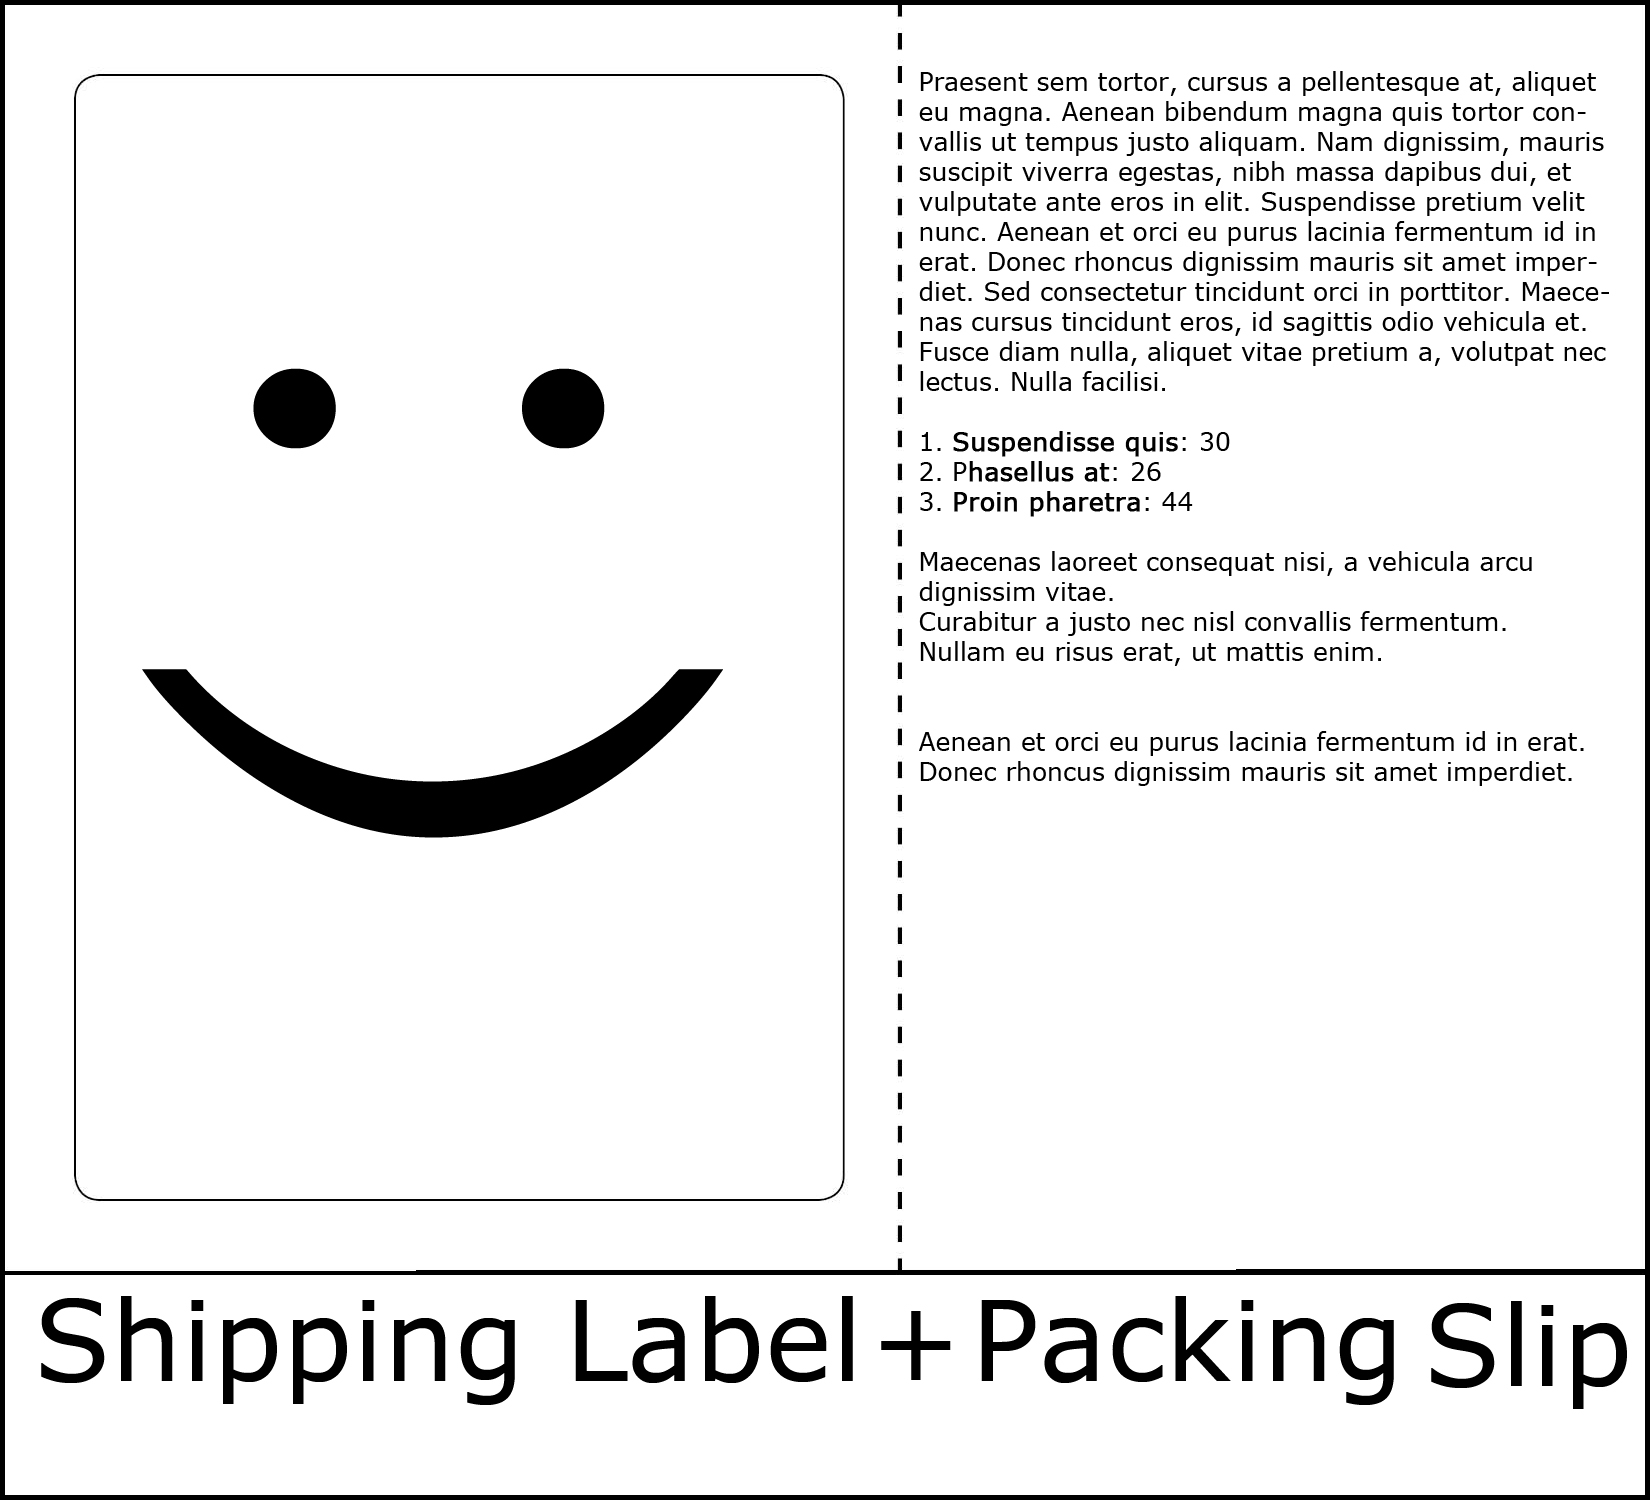 Print Pack Slip And Label On Single Sheet  Blank Wage Slips